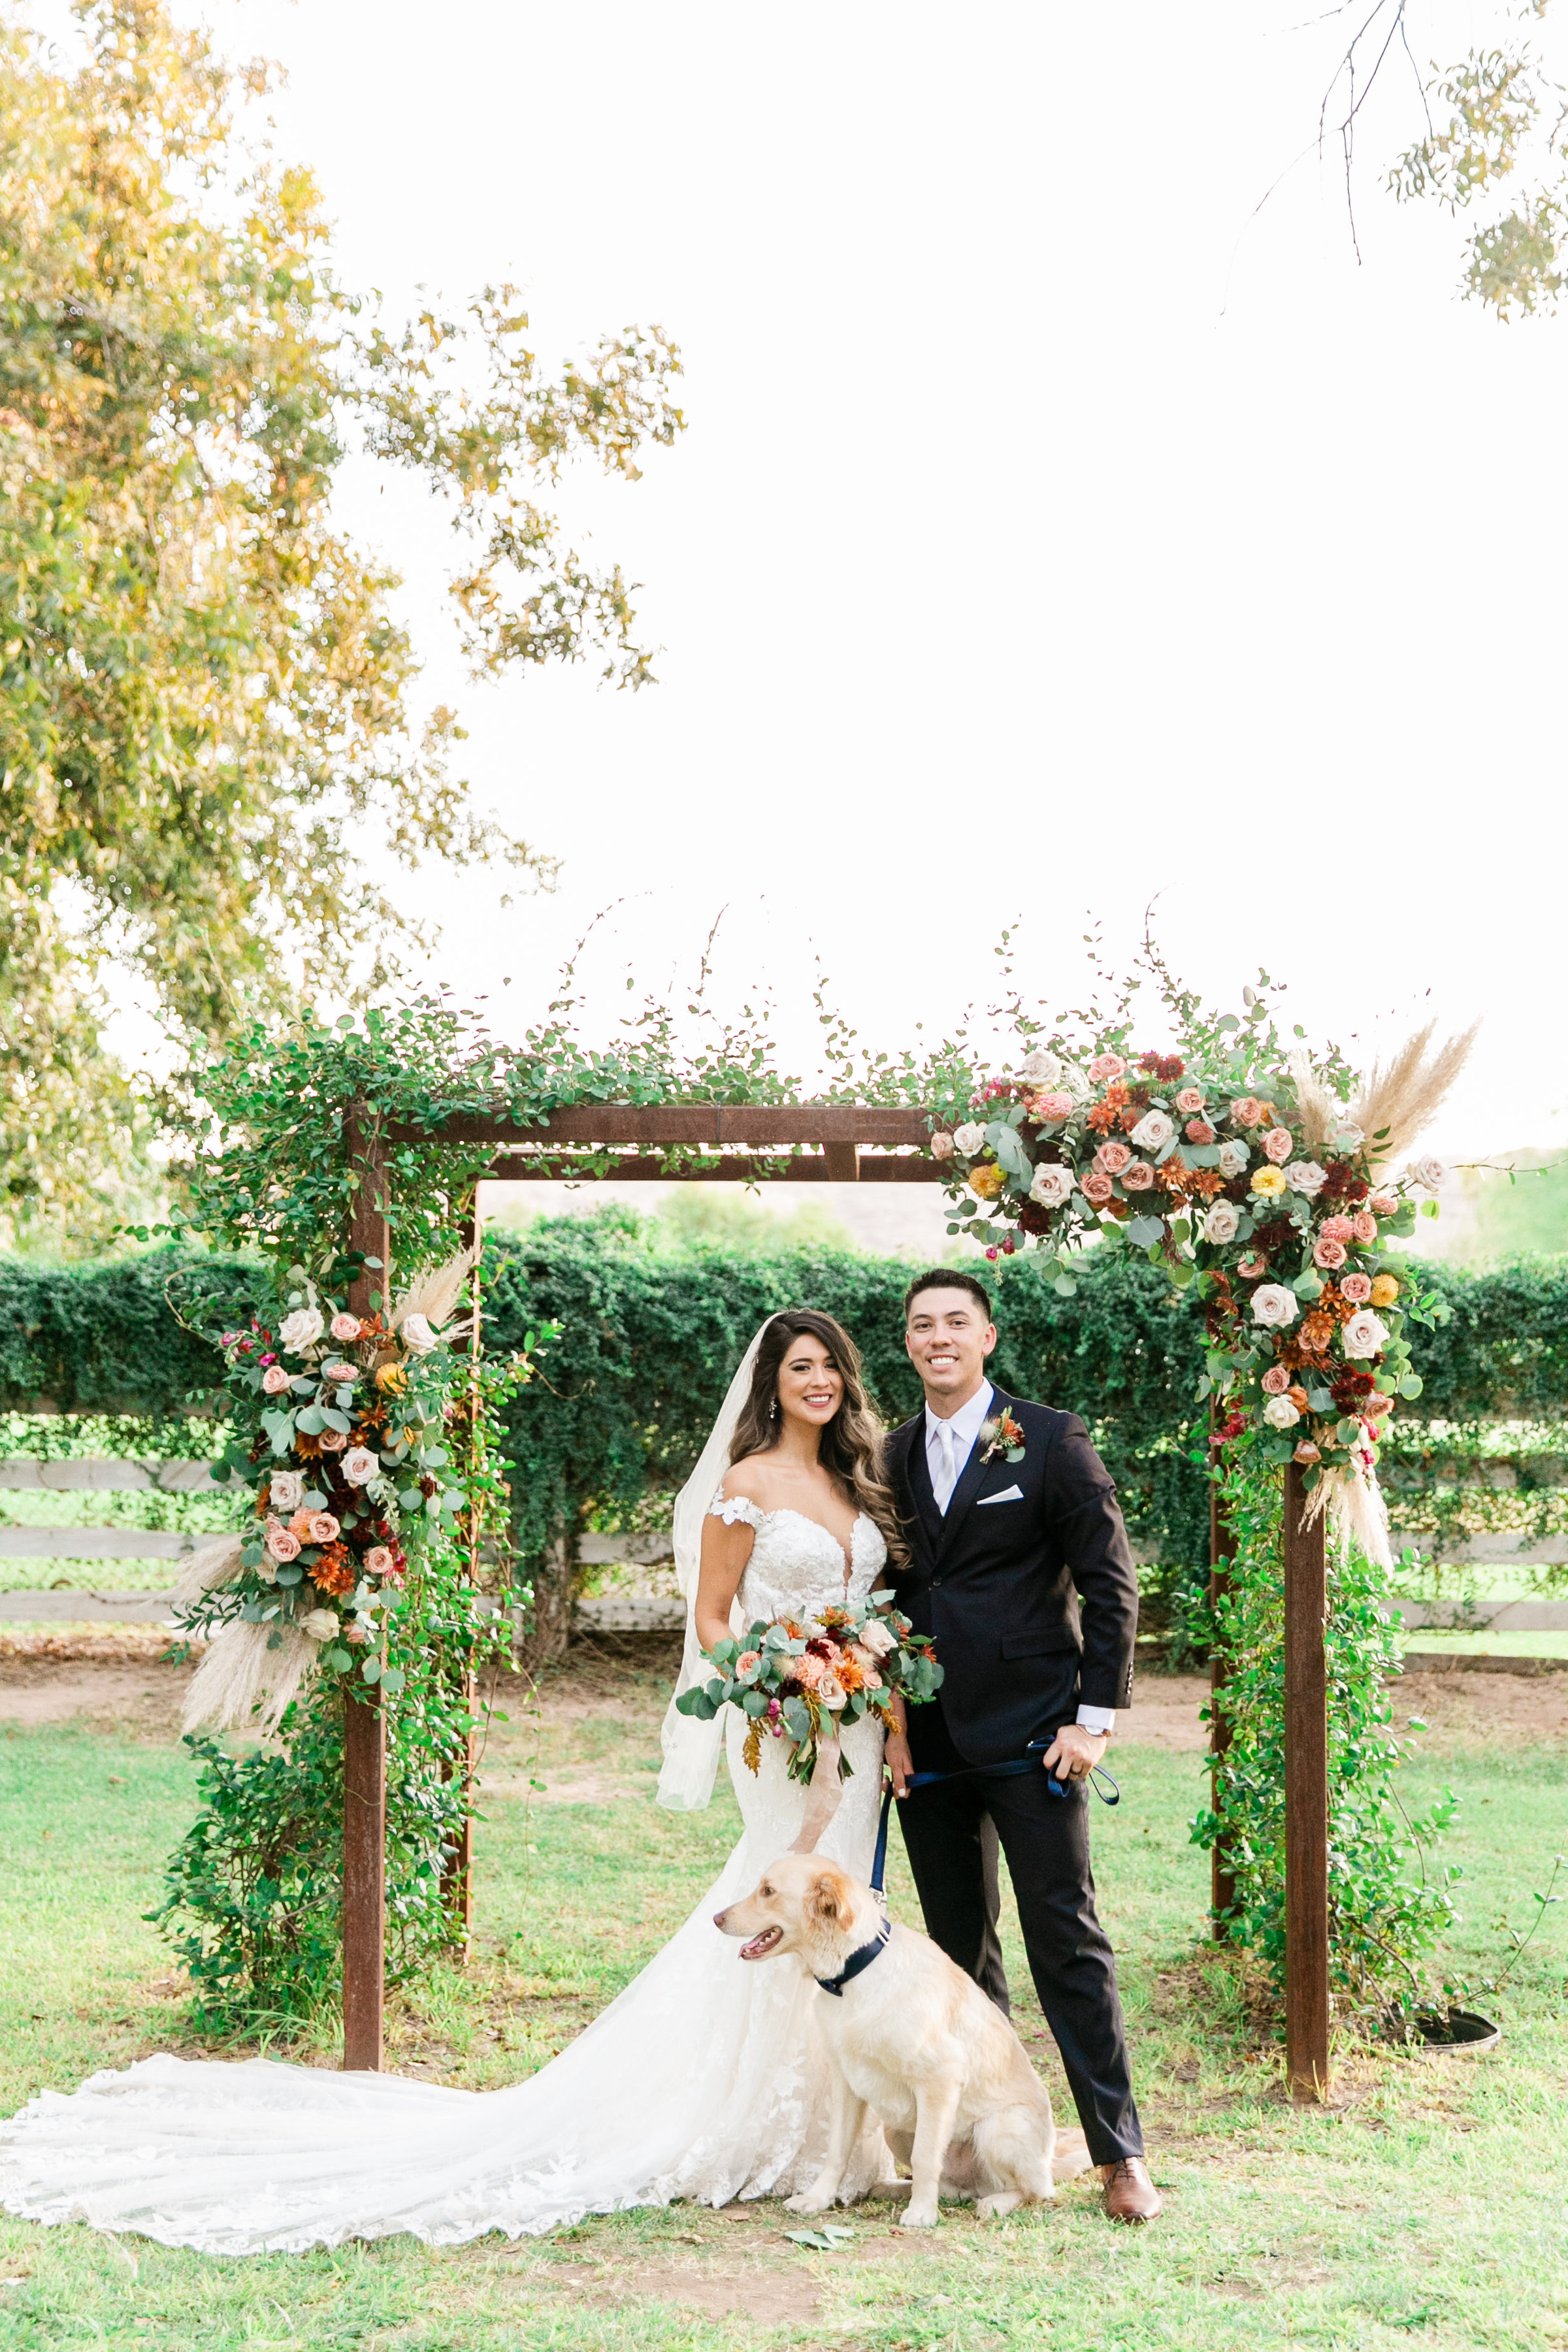 Karlie Colleen Photography - Phoenix Arizona - Farm At South Mountain Venue - Vanessa & Robert-690